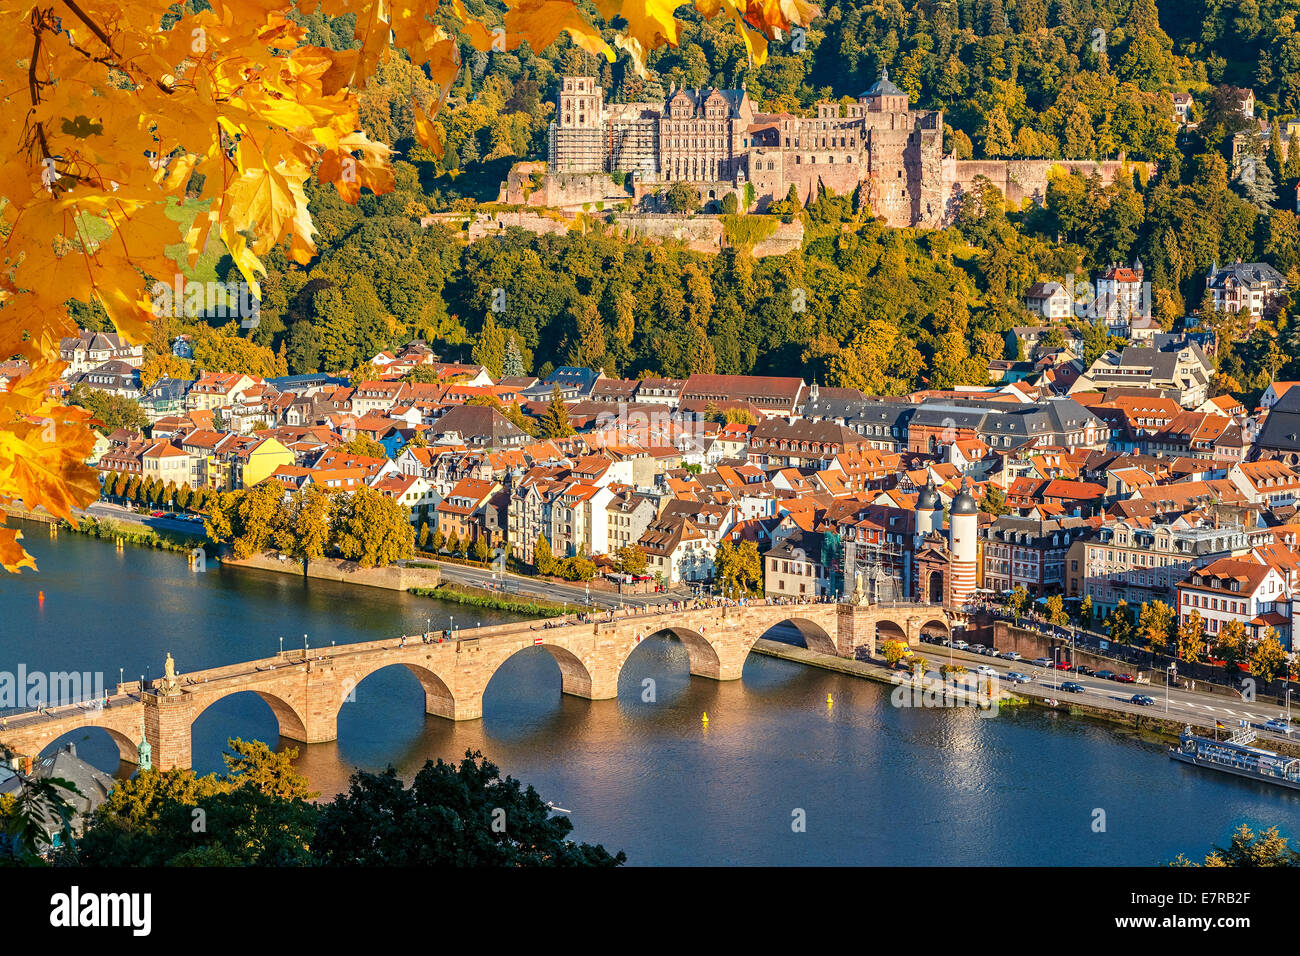 Vue sur Heidelberg Photo Stock